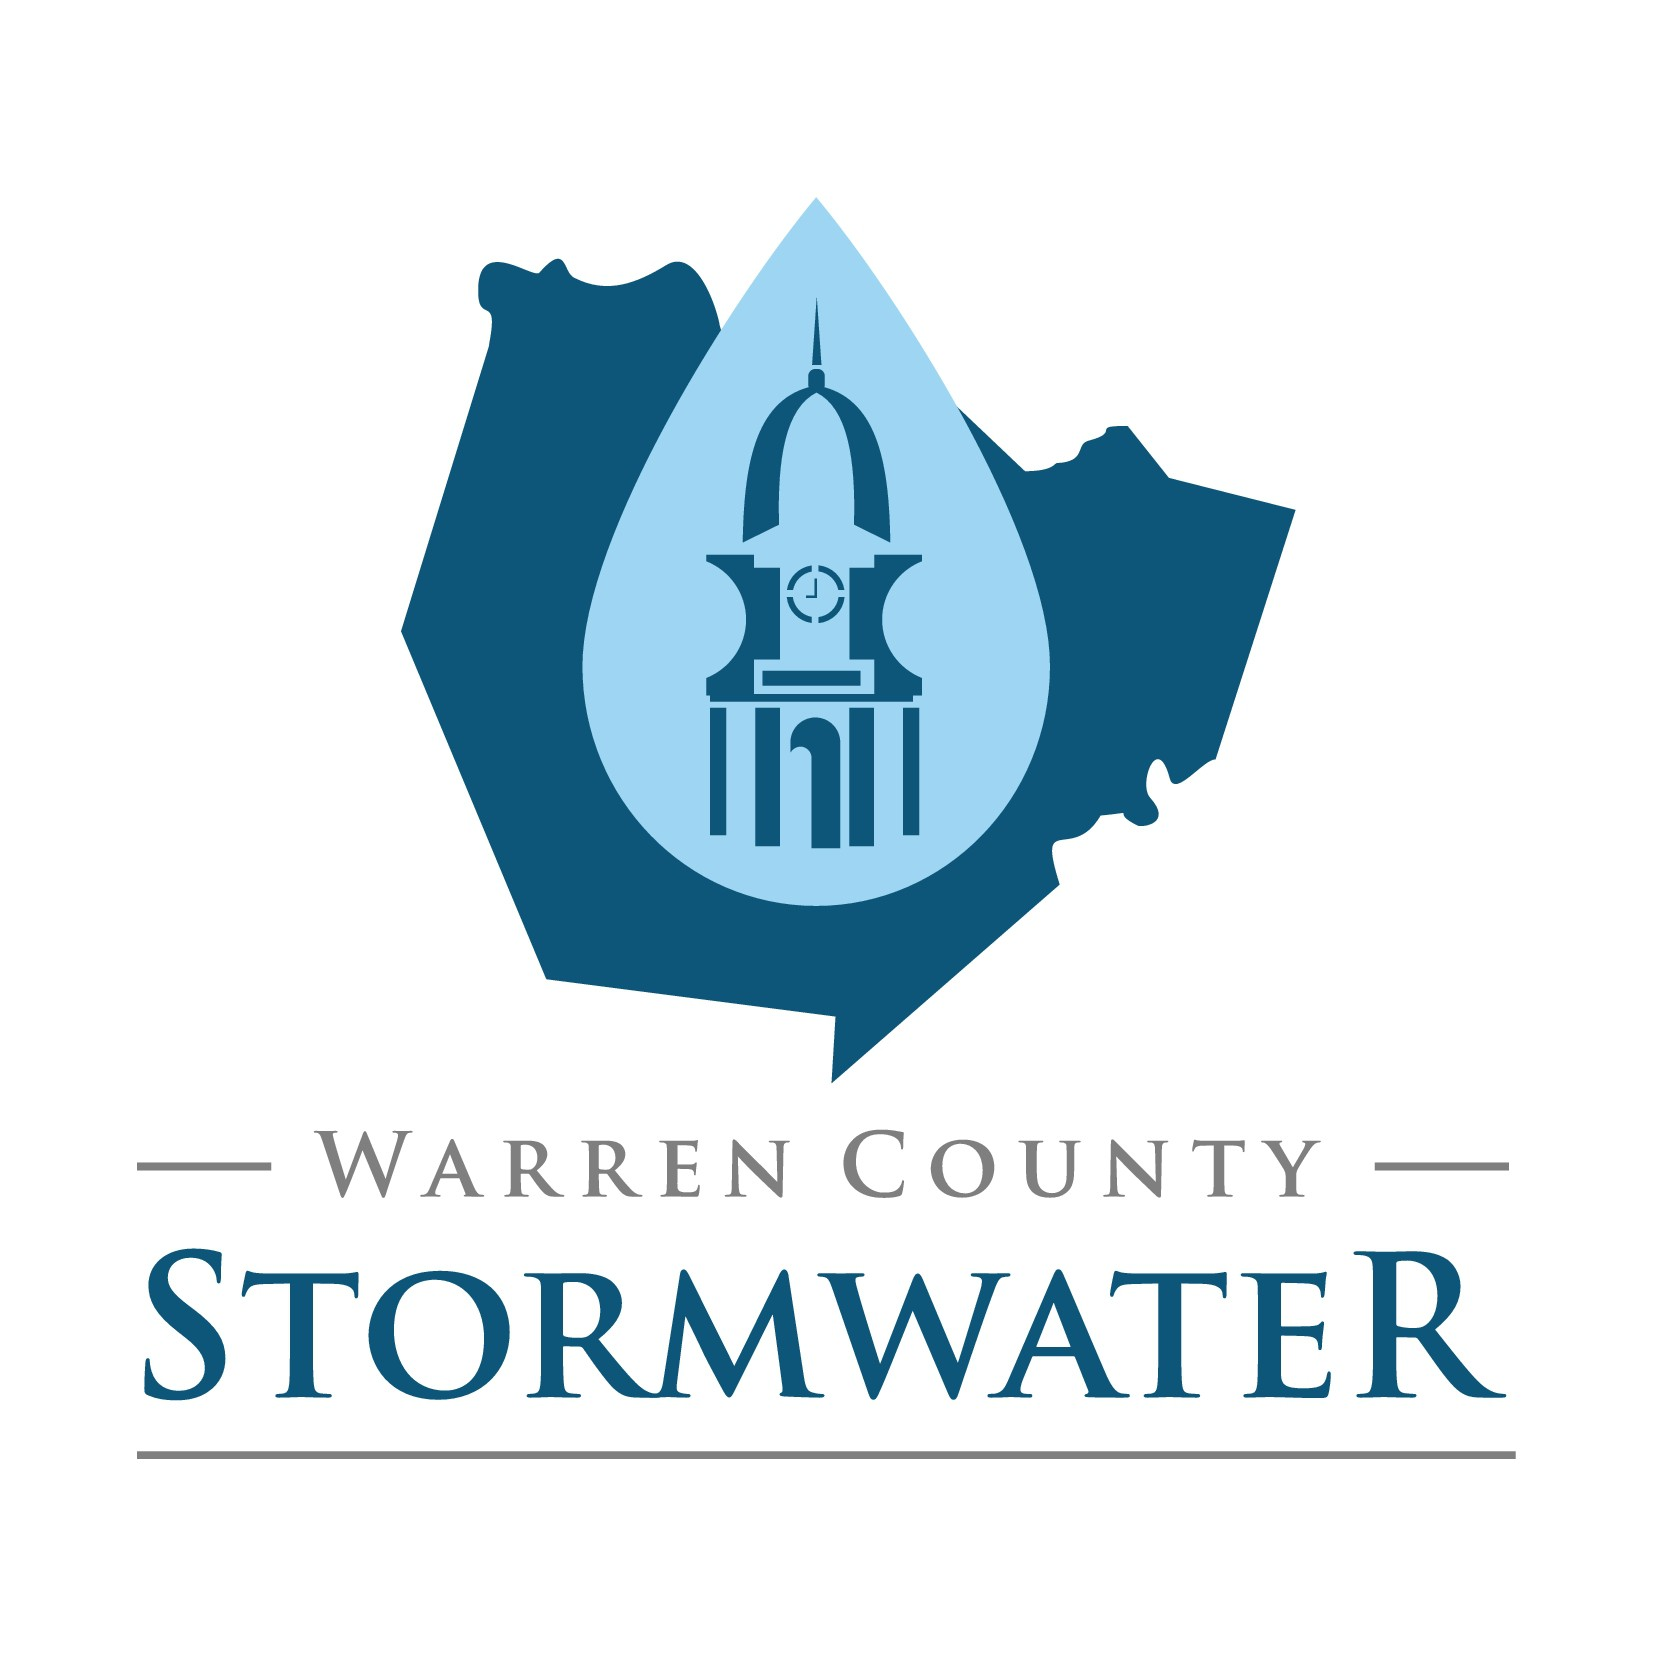 Create a recognizable logo for Warren County Division of Stormwater Management